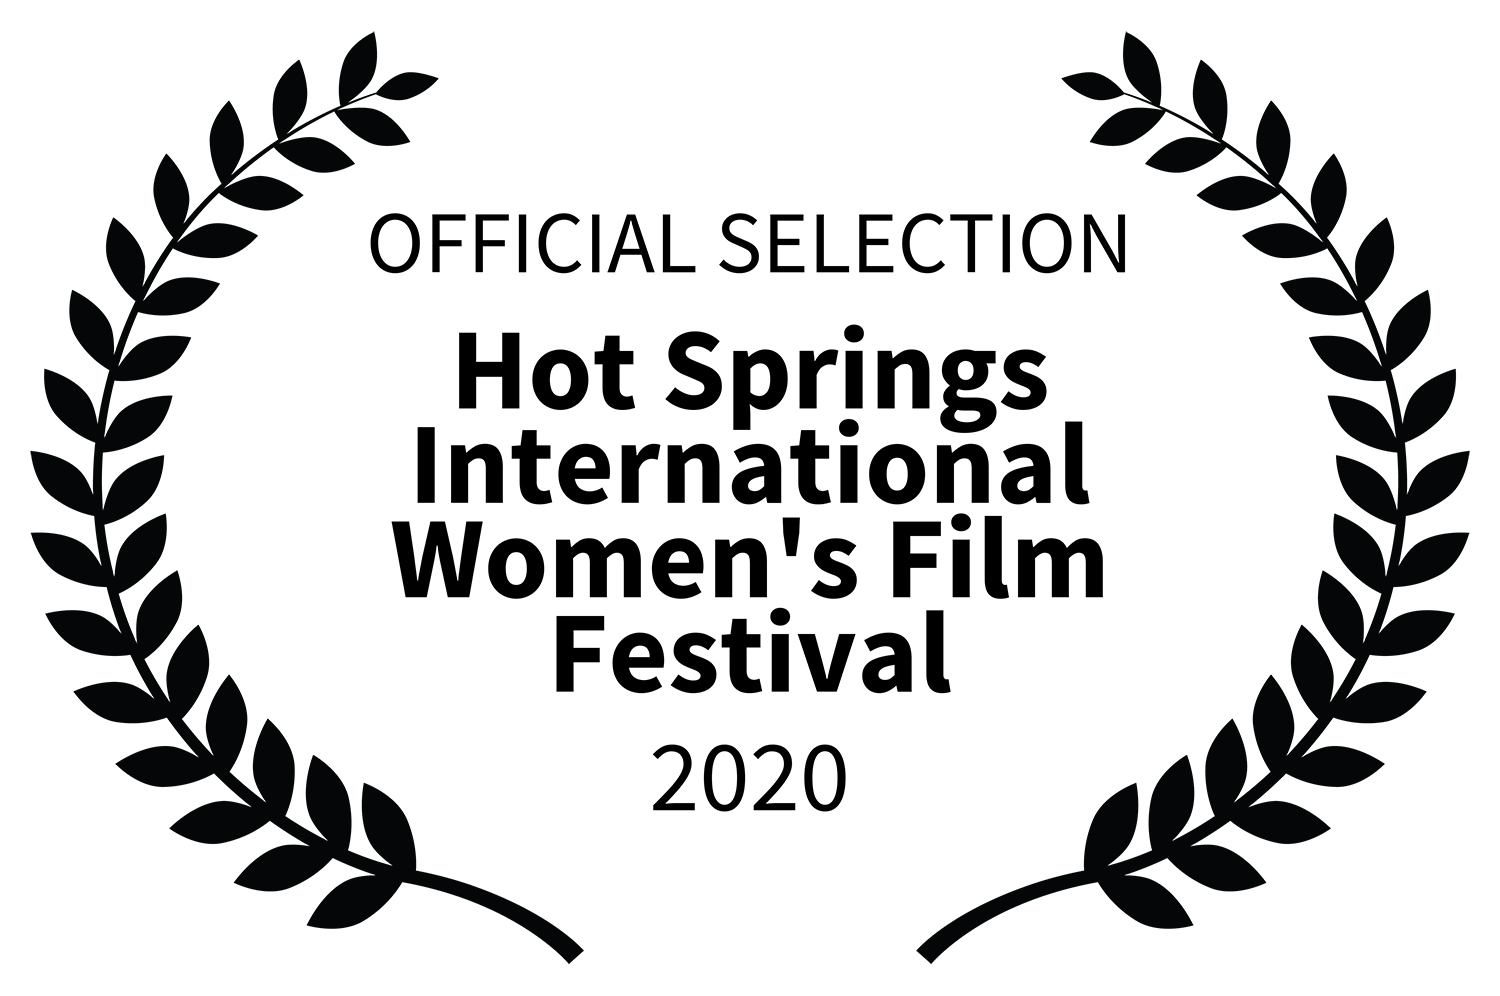 OFFICIALSELECTION-HotSpringsInternationalWomensFilmFestival-2020_small